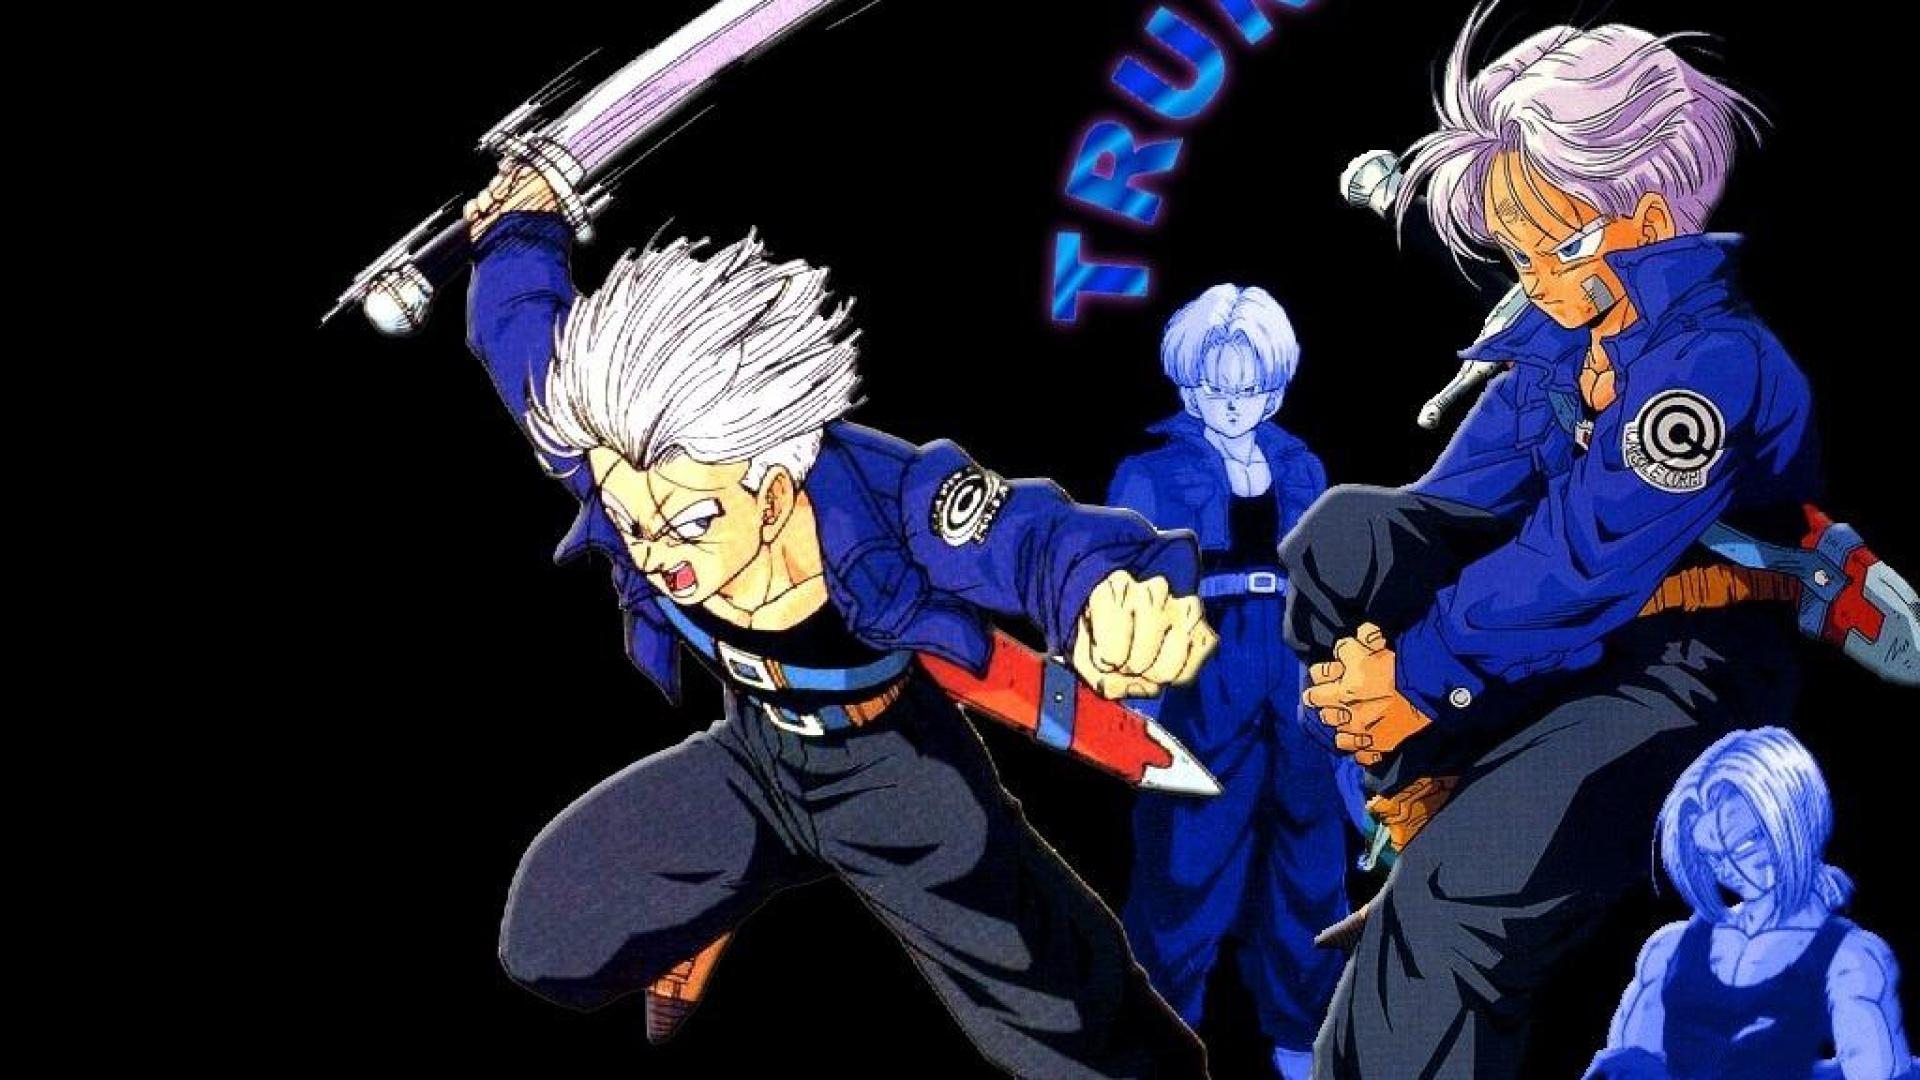 Dragon Ball Z Trunks Gallery 598254347 Wallpaper For Free New Fhdq Background